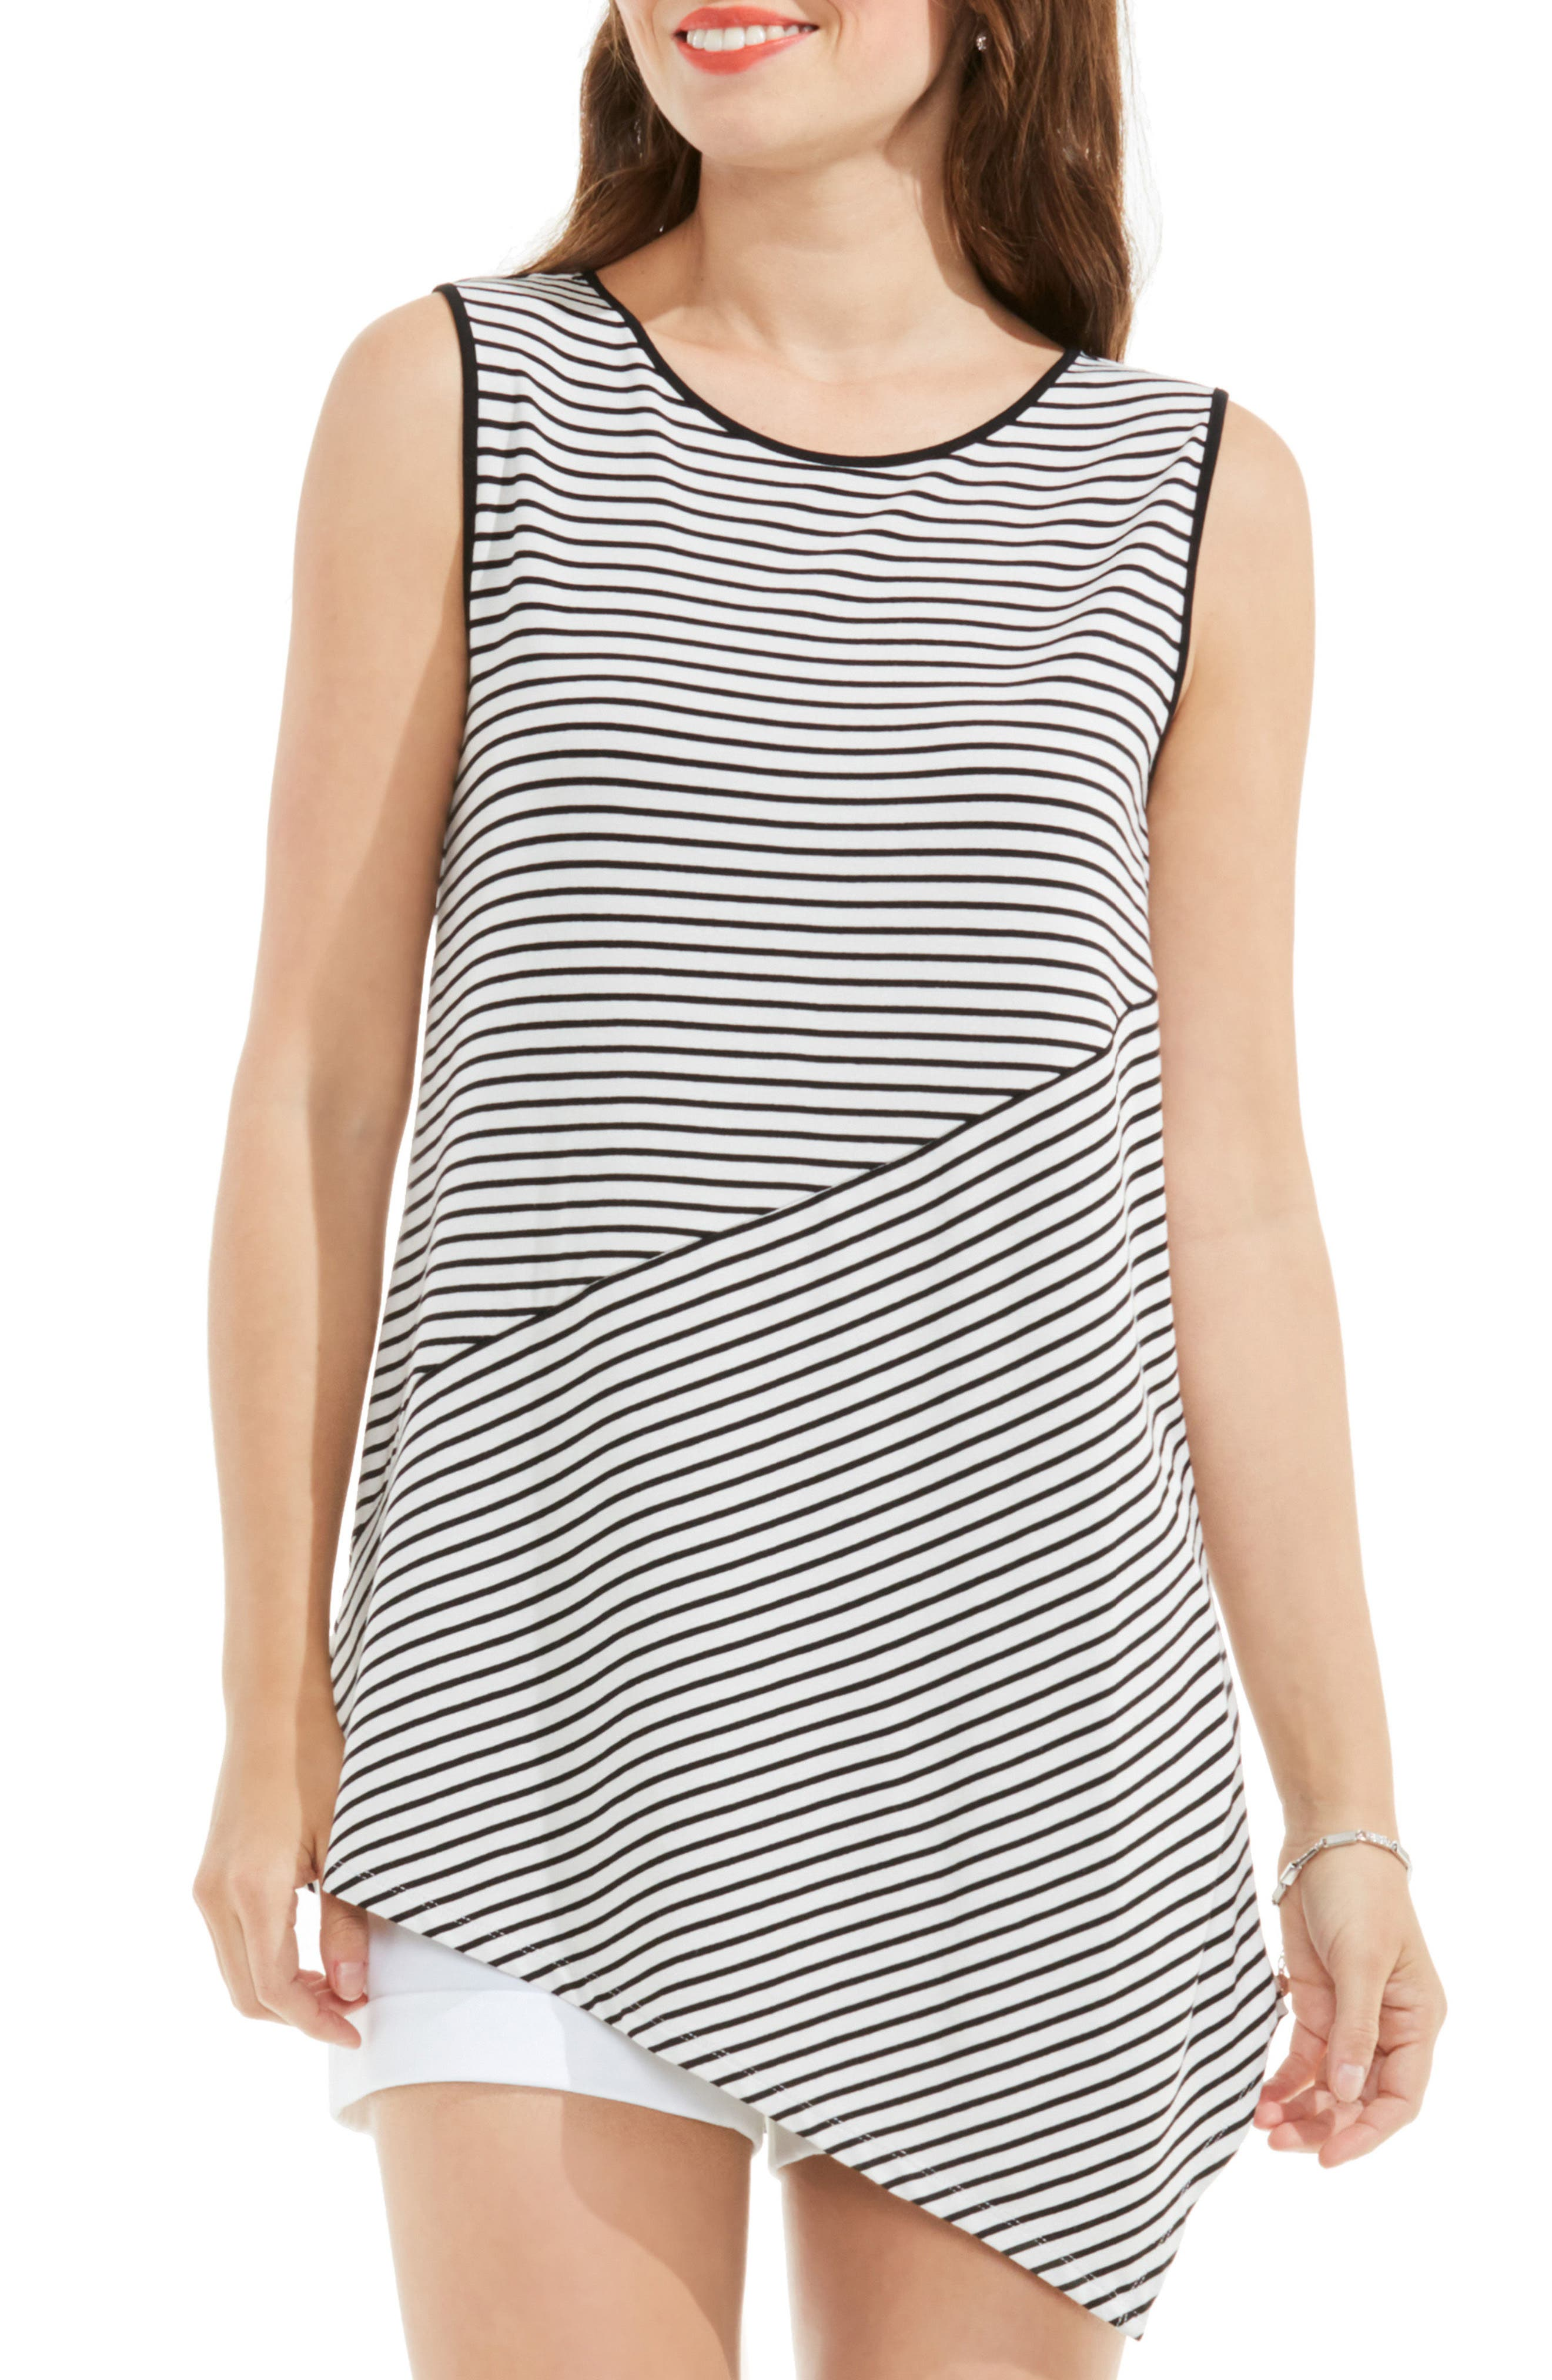 Vince Camuto Asymmetrical Stripe Top (Regular & Petite)